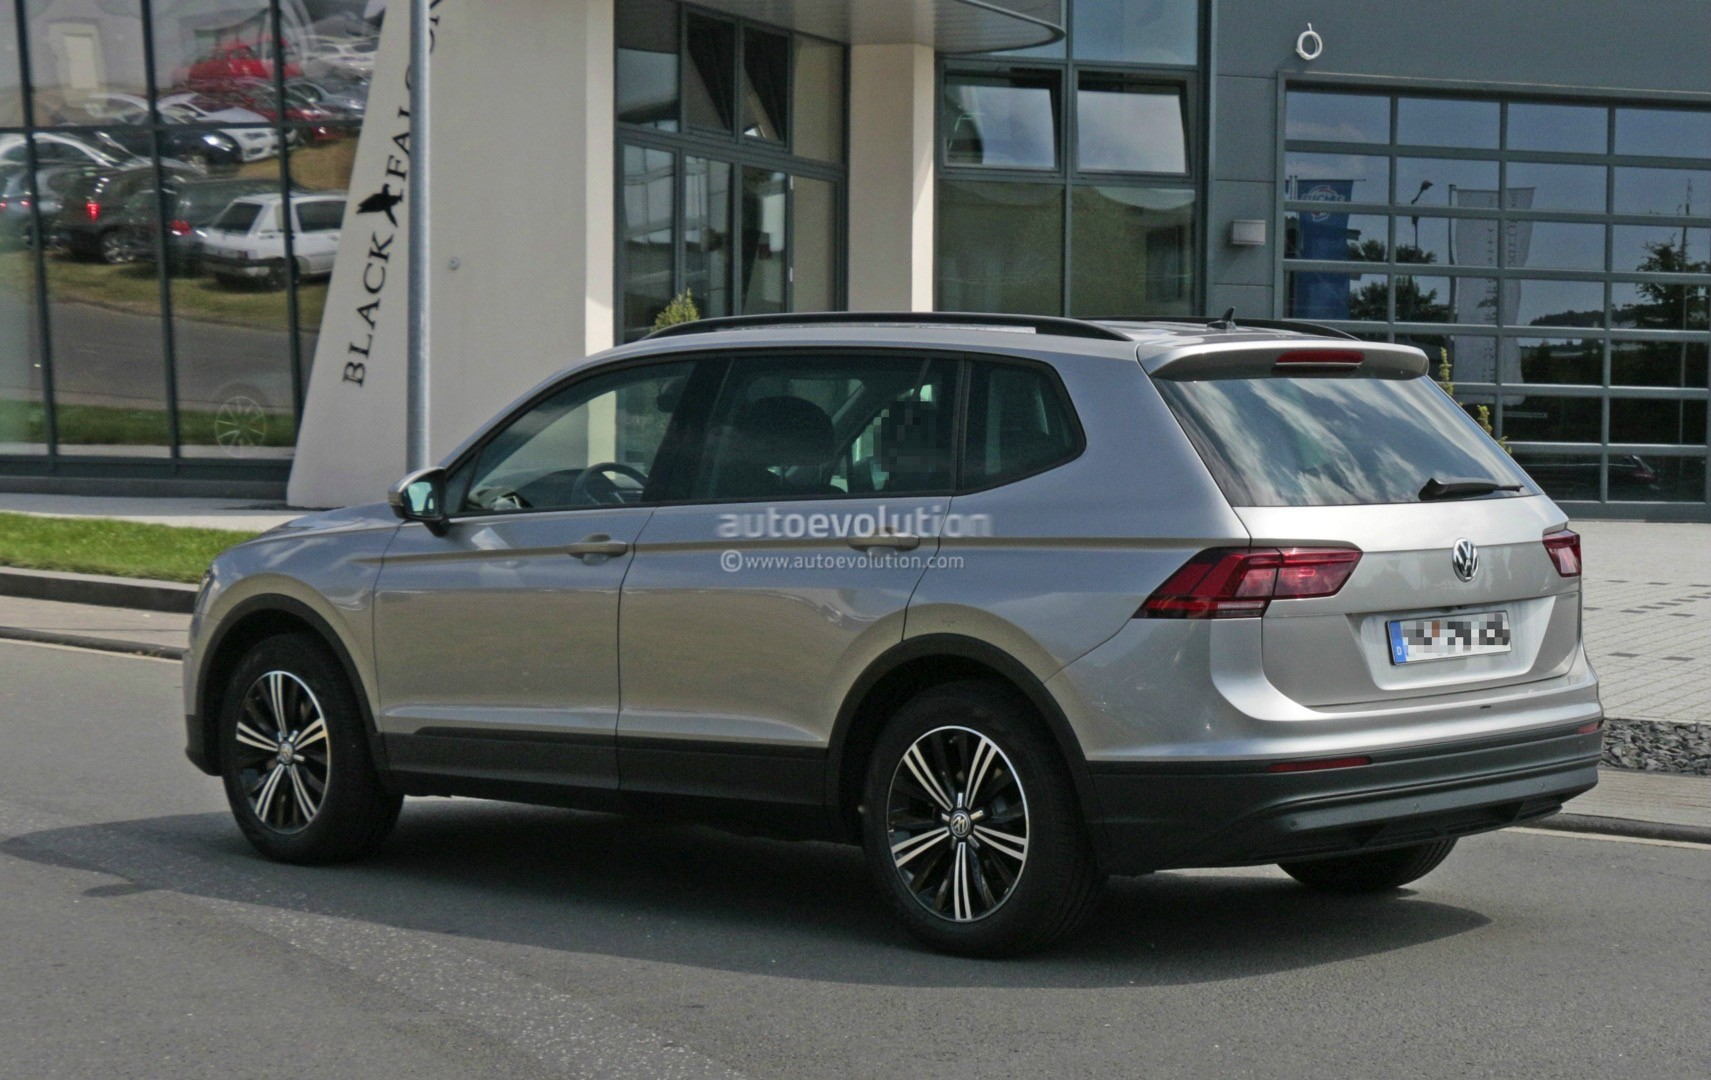 2018 Volkswagen Tiguan Allspace 7 Seater Teased For